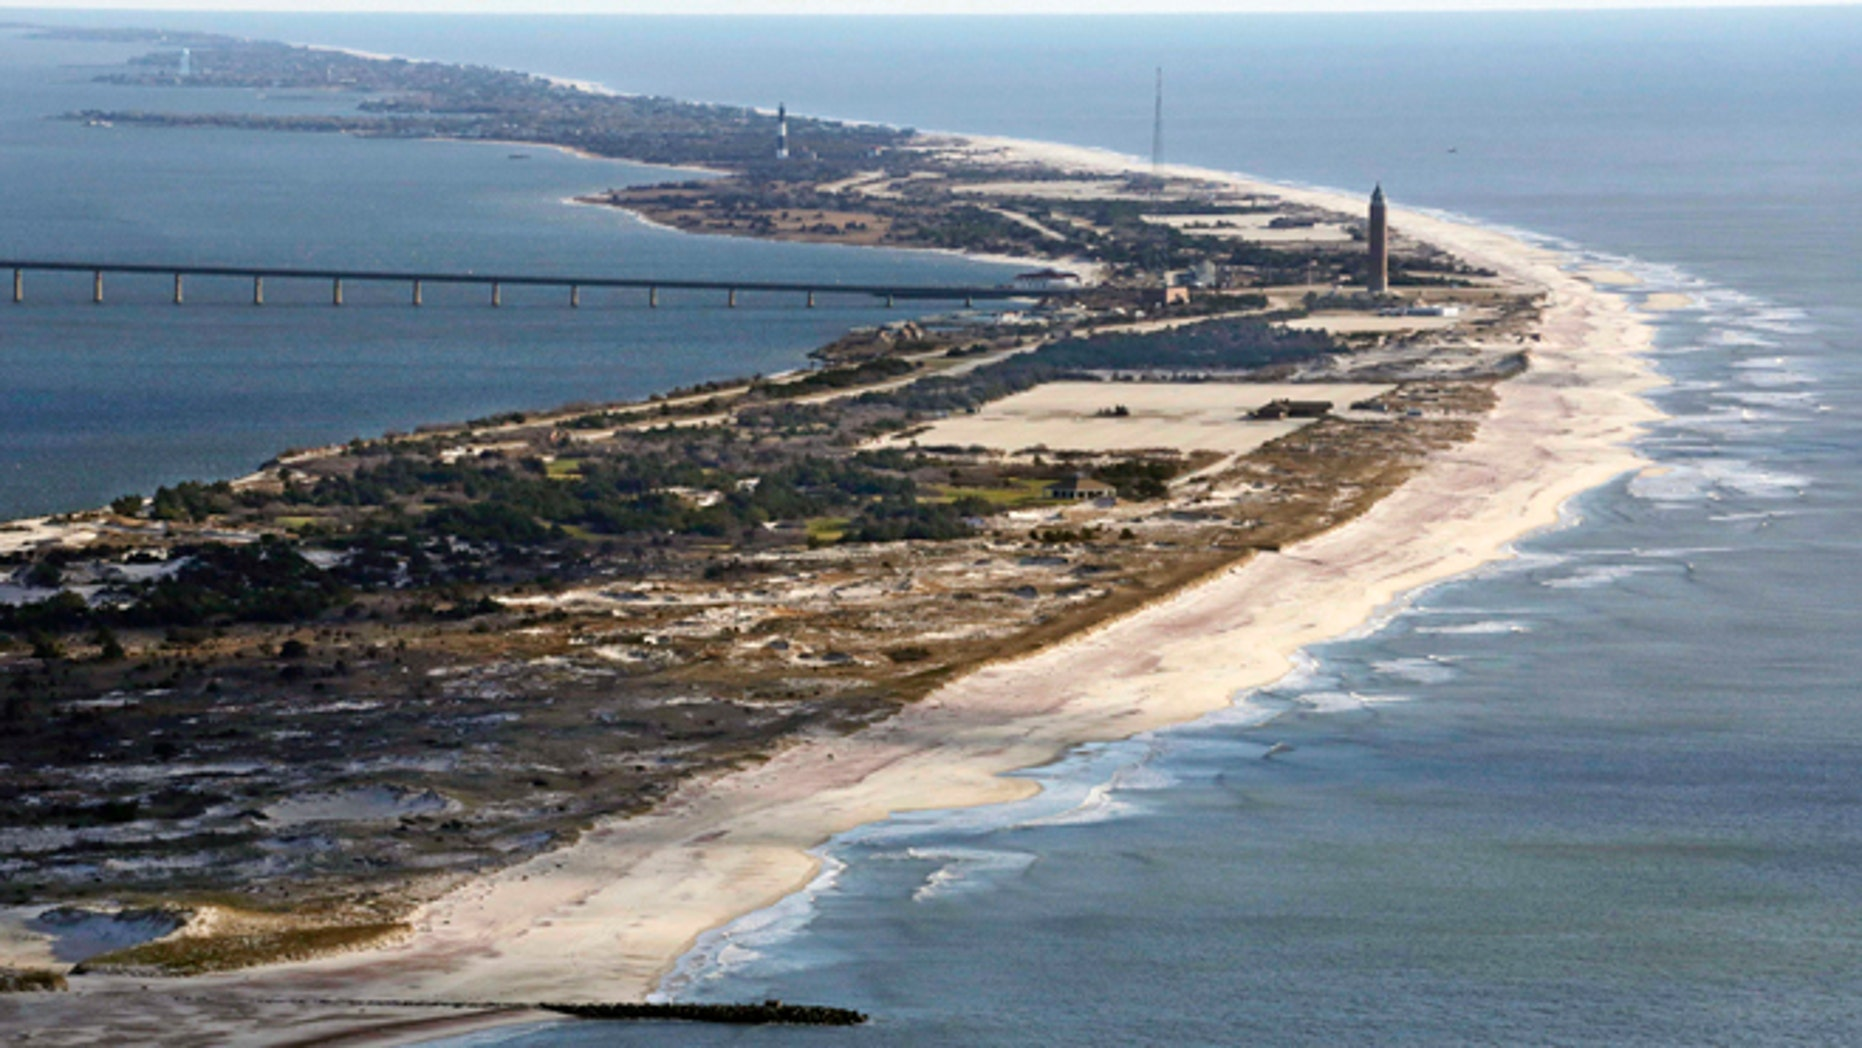 FILE 2013: Robert Moses State Park on Fire island, N.Y., after Superstorm Sandy struck.